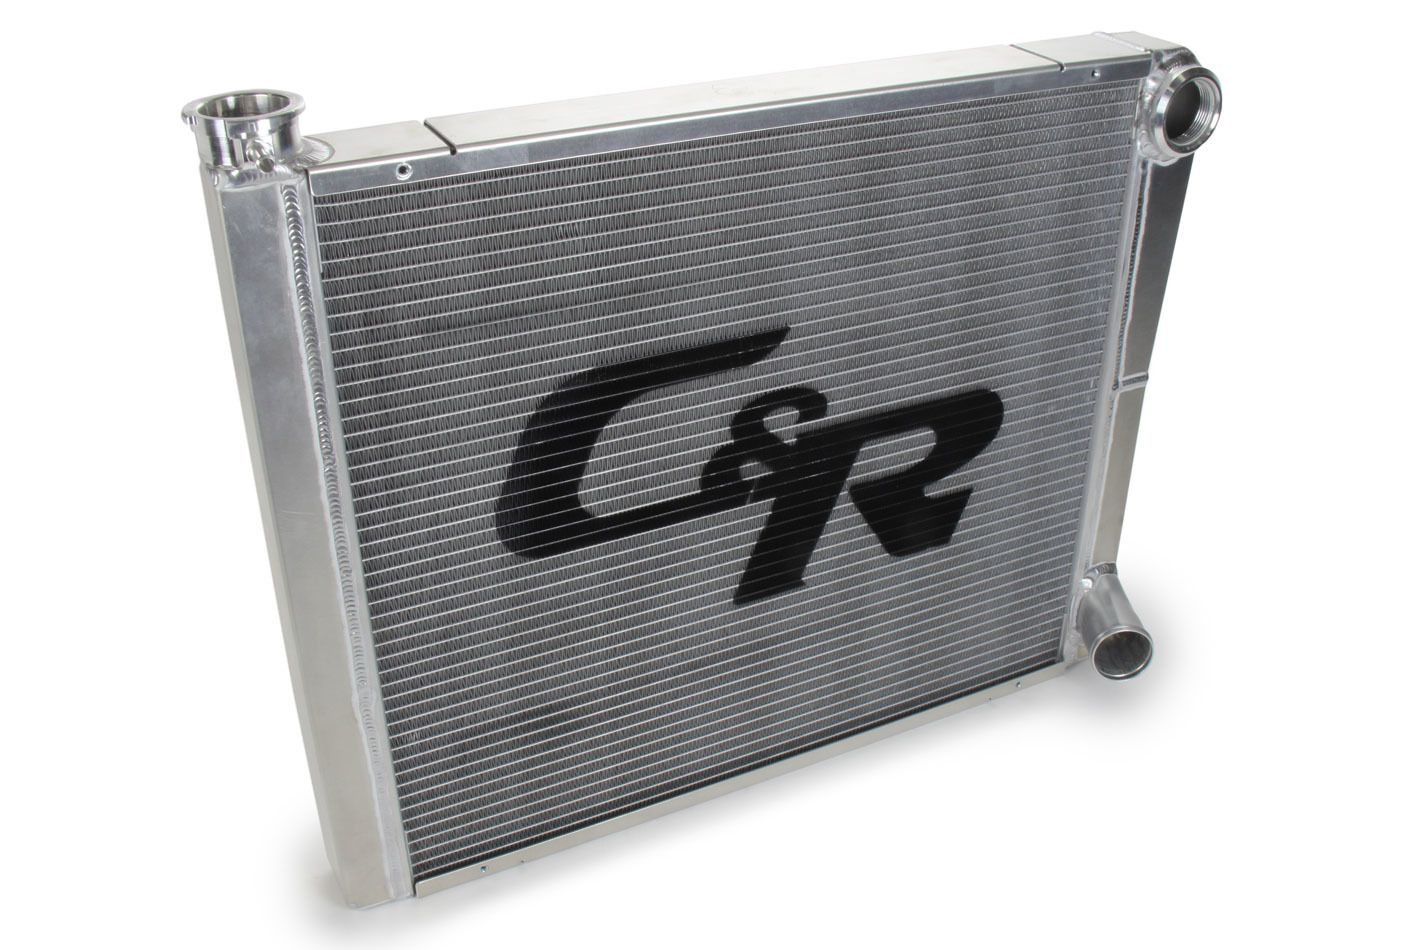 C & R Racing Radiators 902-24190 Radiator, 24 in W x 19 in H x 1-3/4 in D, Dual Pass, Driver Side Inlet, Passenger Side Outlet, Aluminum, Natural, Each